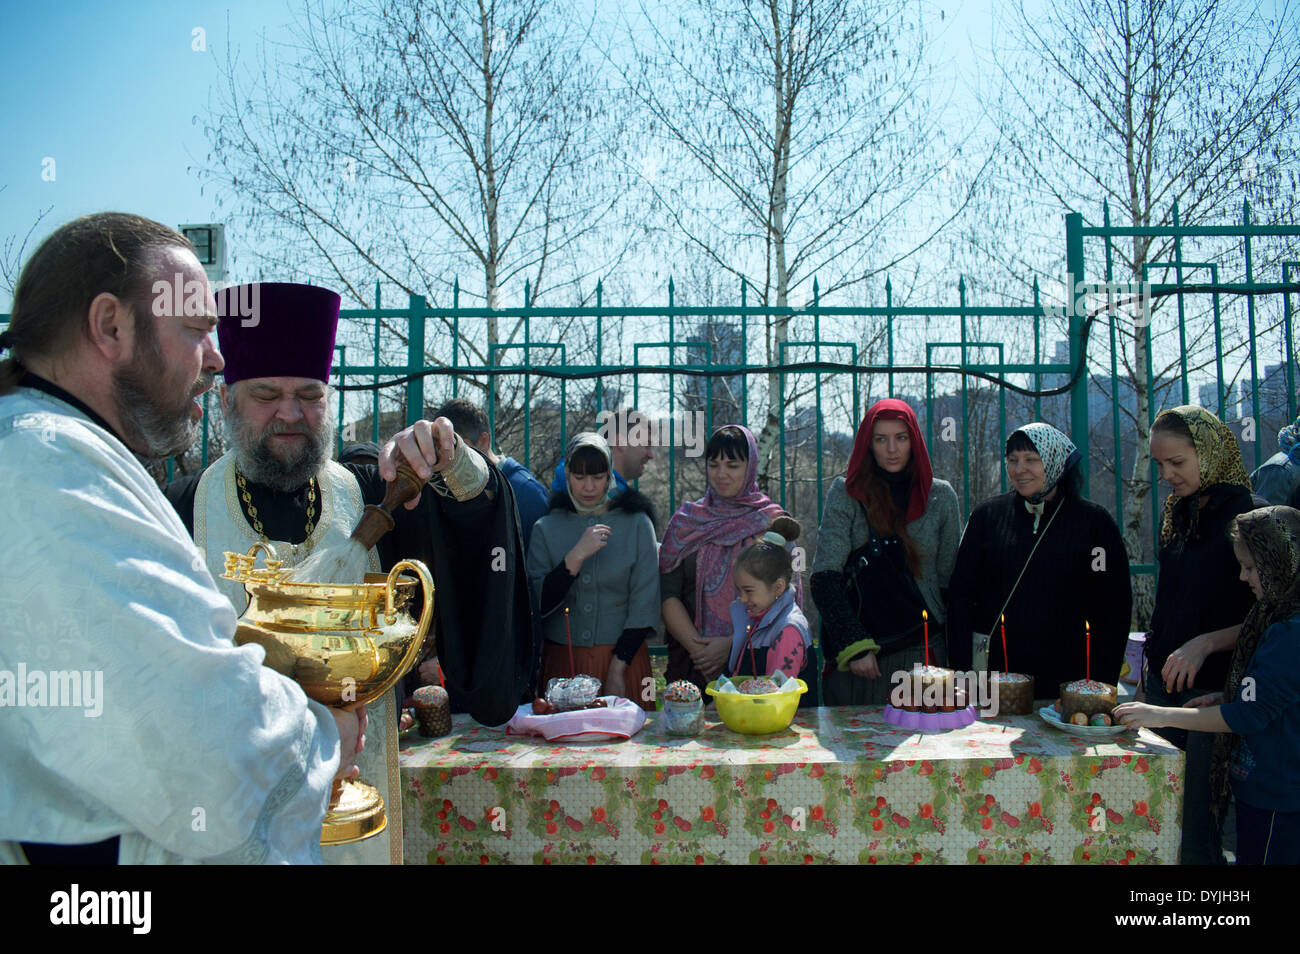 Moscow, Russia. 19th Apr, 2014. A Russian Orthodox priest blesses people and traditional Easter cakes and painted eggs prepared for an Easter celebration, near a church in Moscow. Credit:  Anna Sergeeva/ZUMAPRESS.com/Alamy Live News - Stock Image